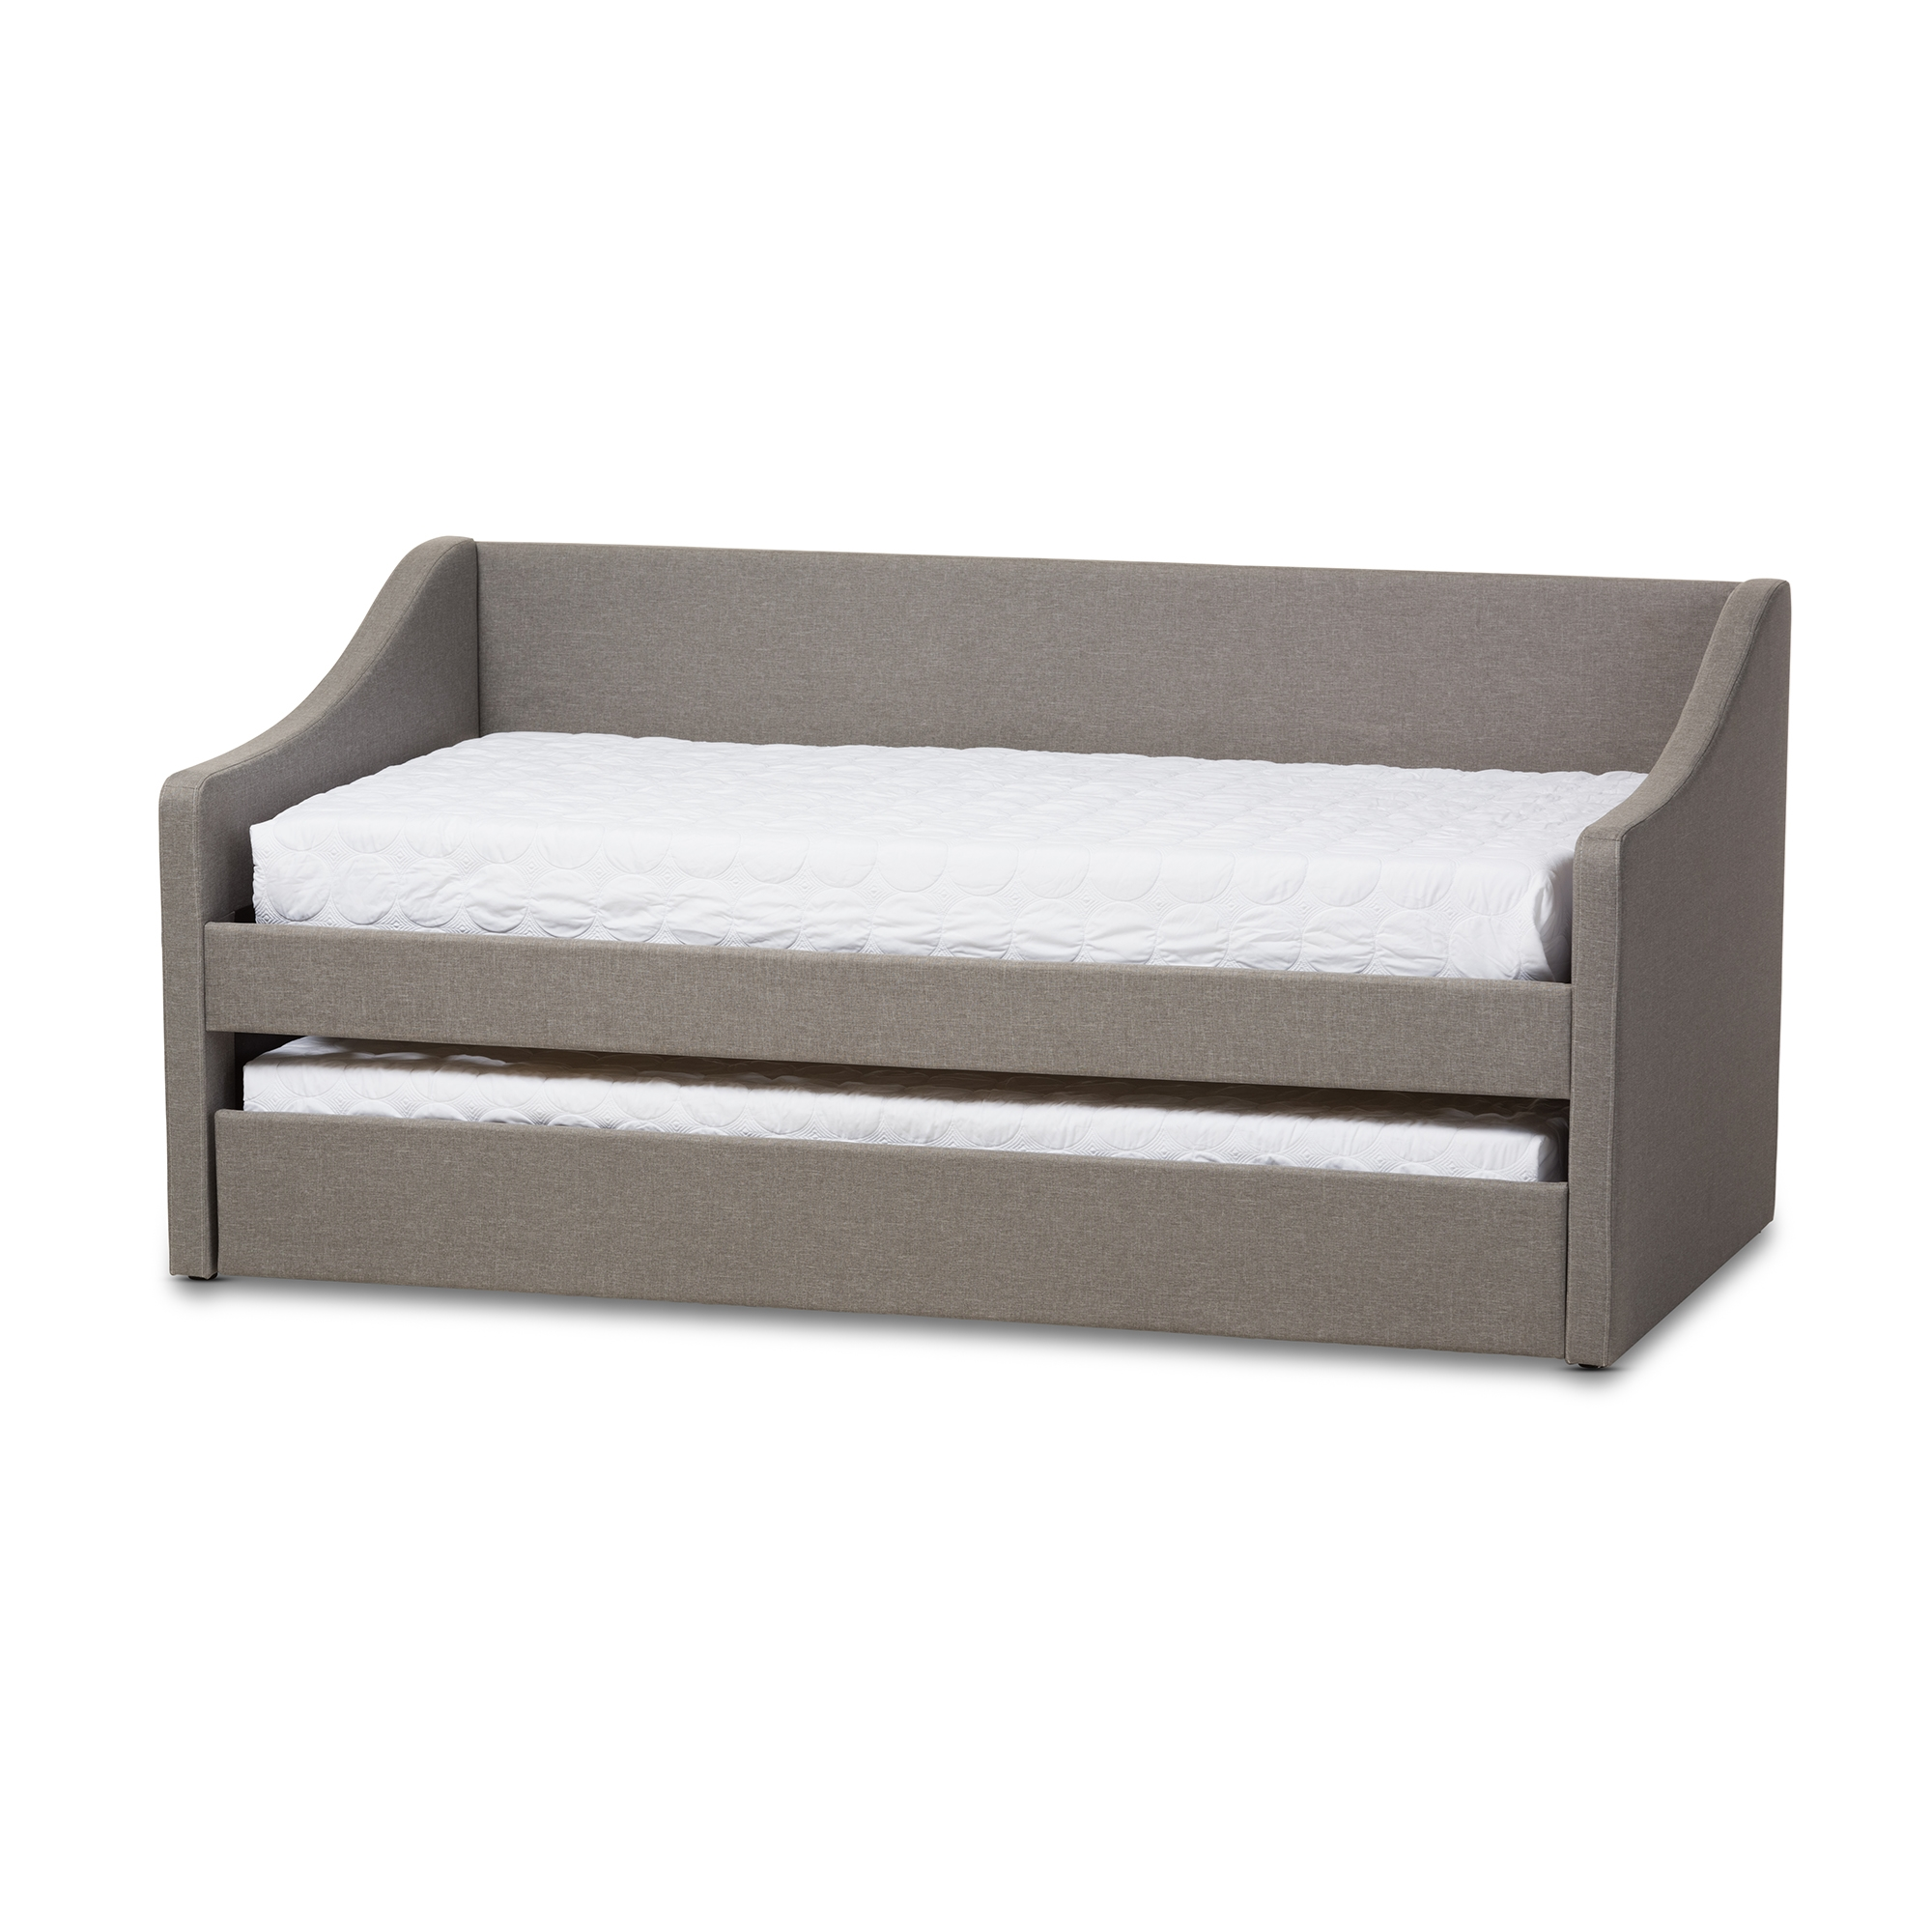 Attirant Baxton Studio Barnstorm Modern And Contemporary Grey Fabric Upholstered  Daybed With Guest Trundle Bed